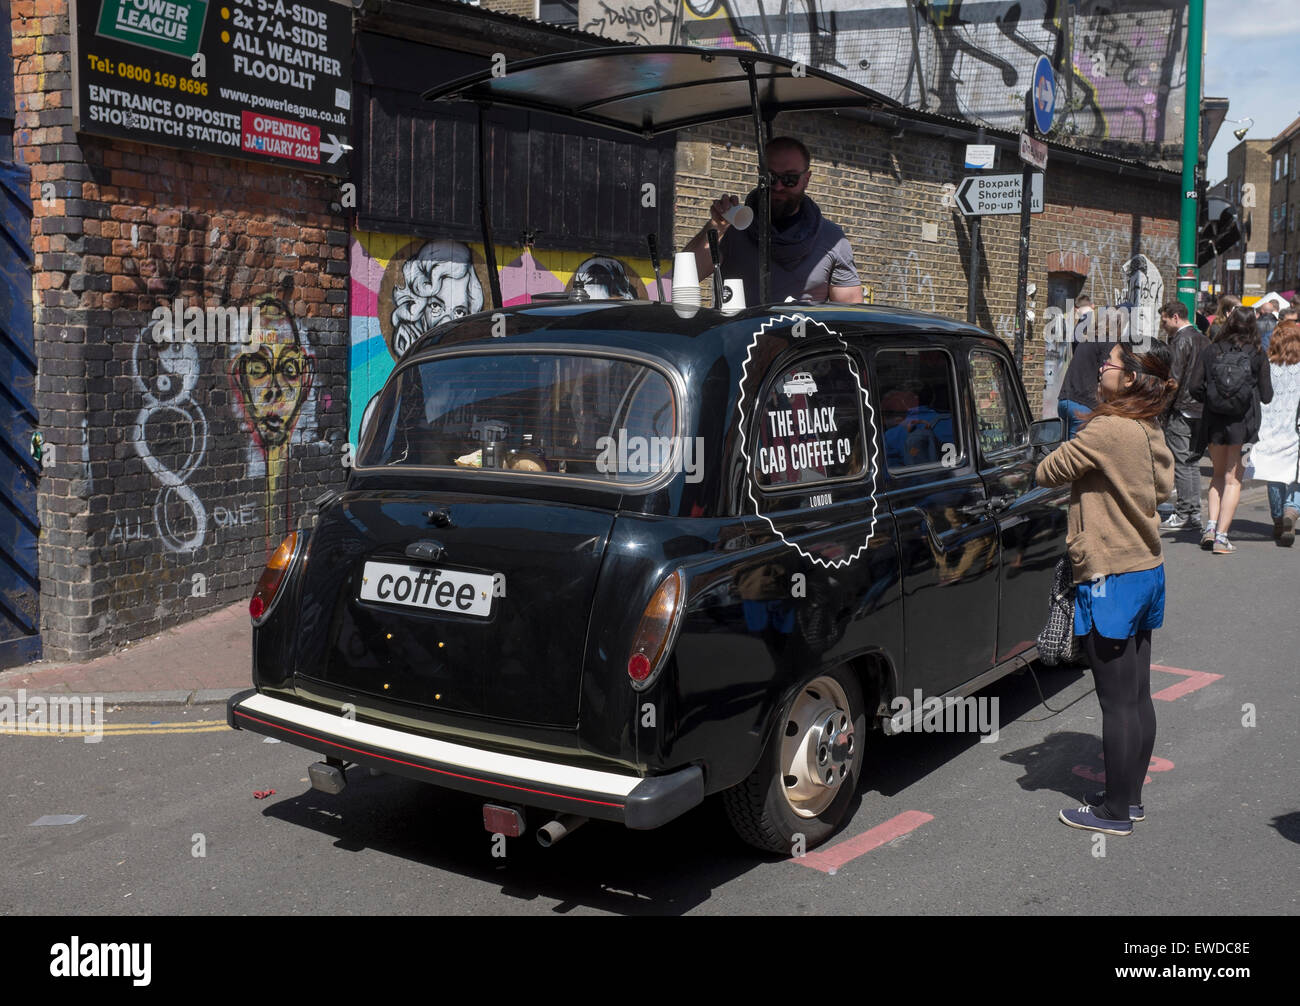 Black Cab Coffee Cafe Company selling drinks at Brick Lane